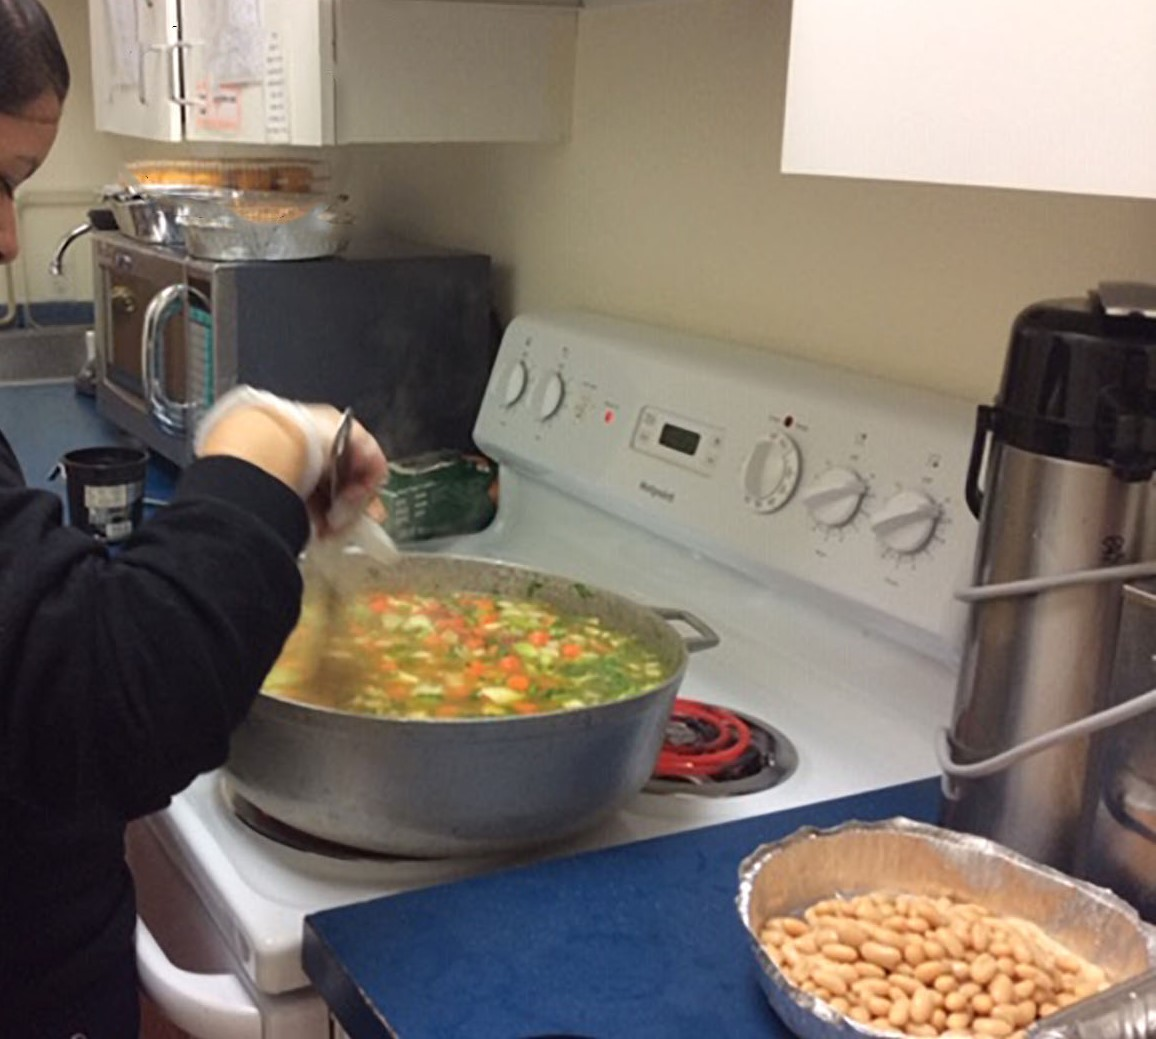 Children create soup, then launch into a discussion of scientific concepts related to cooking.